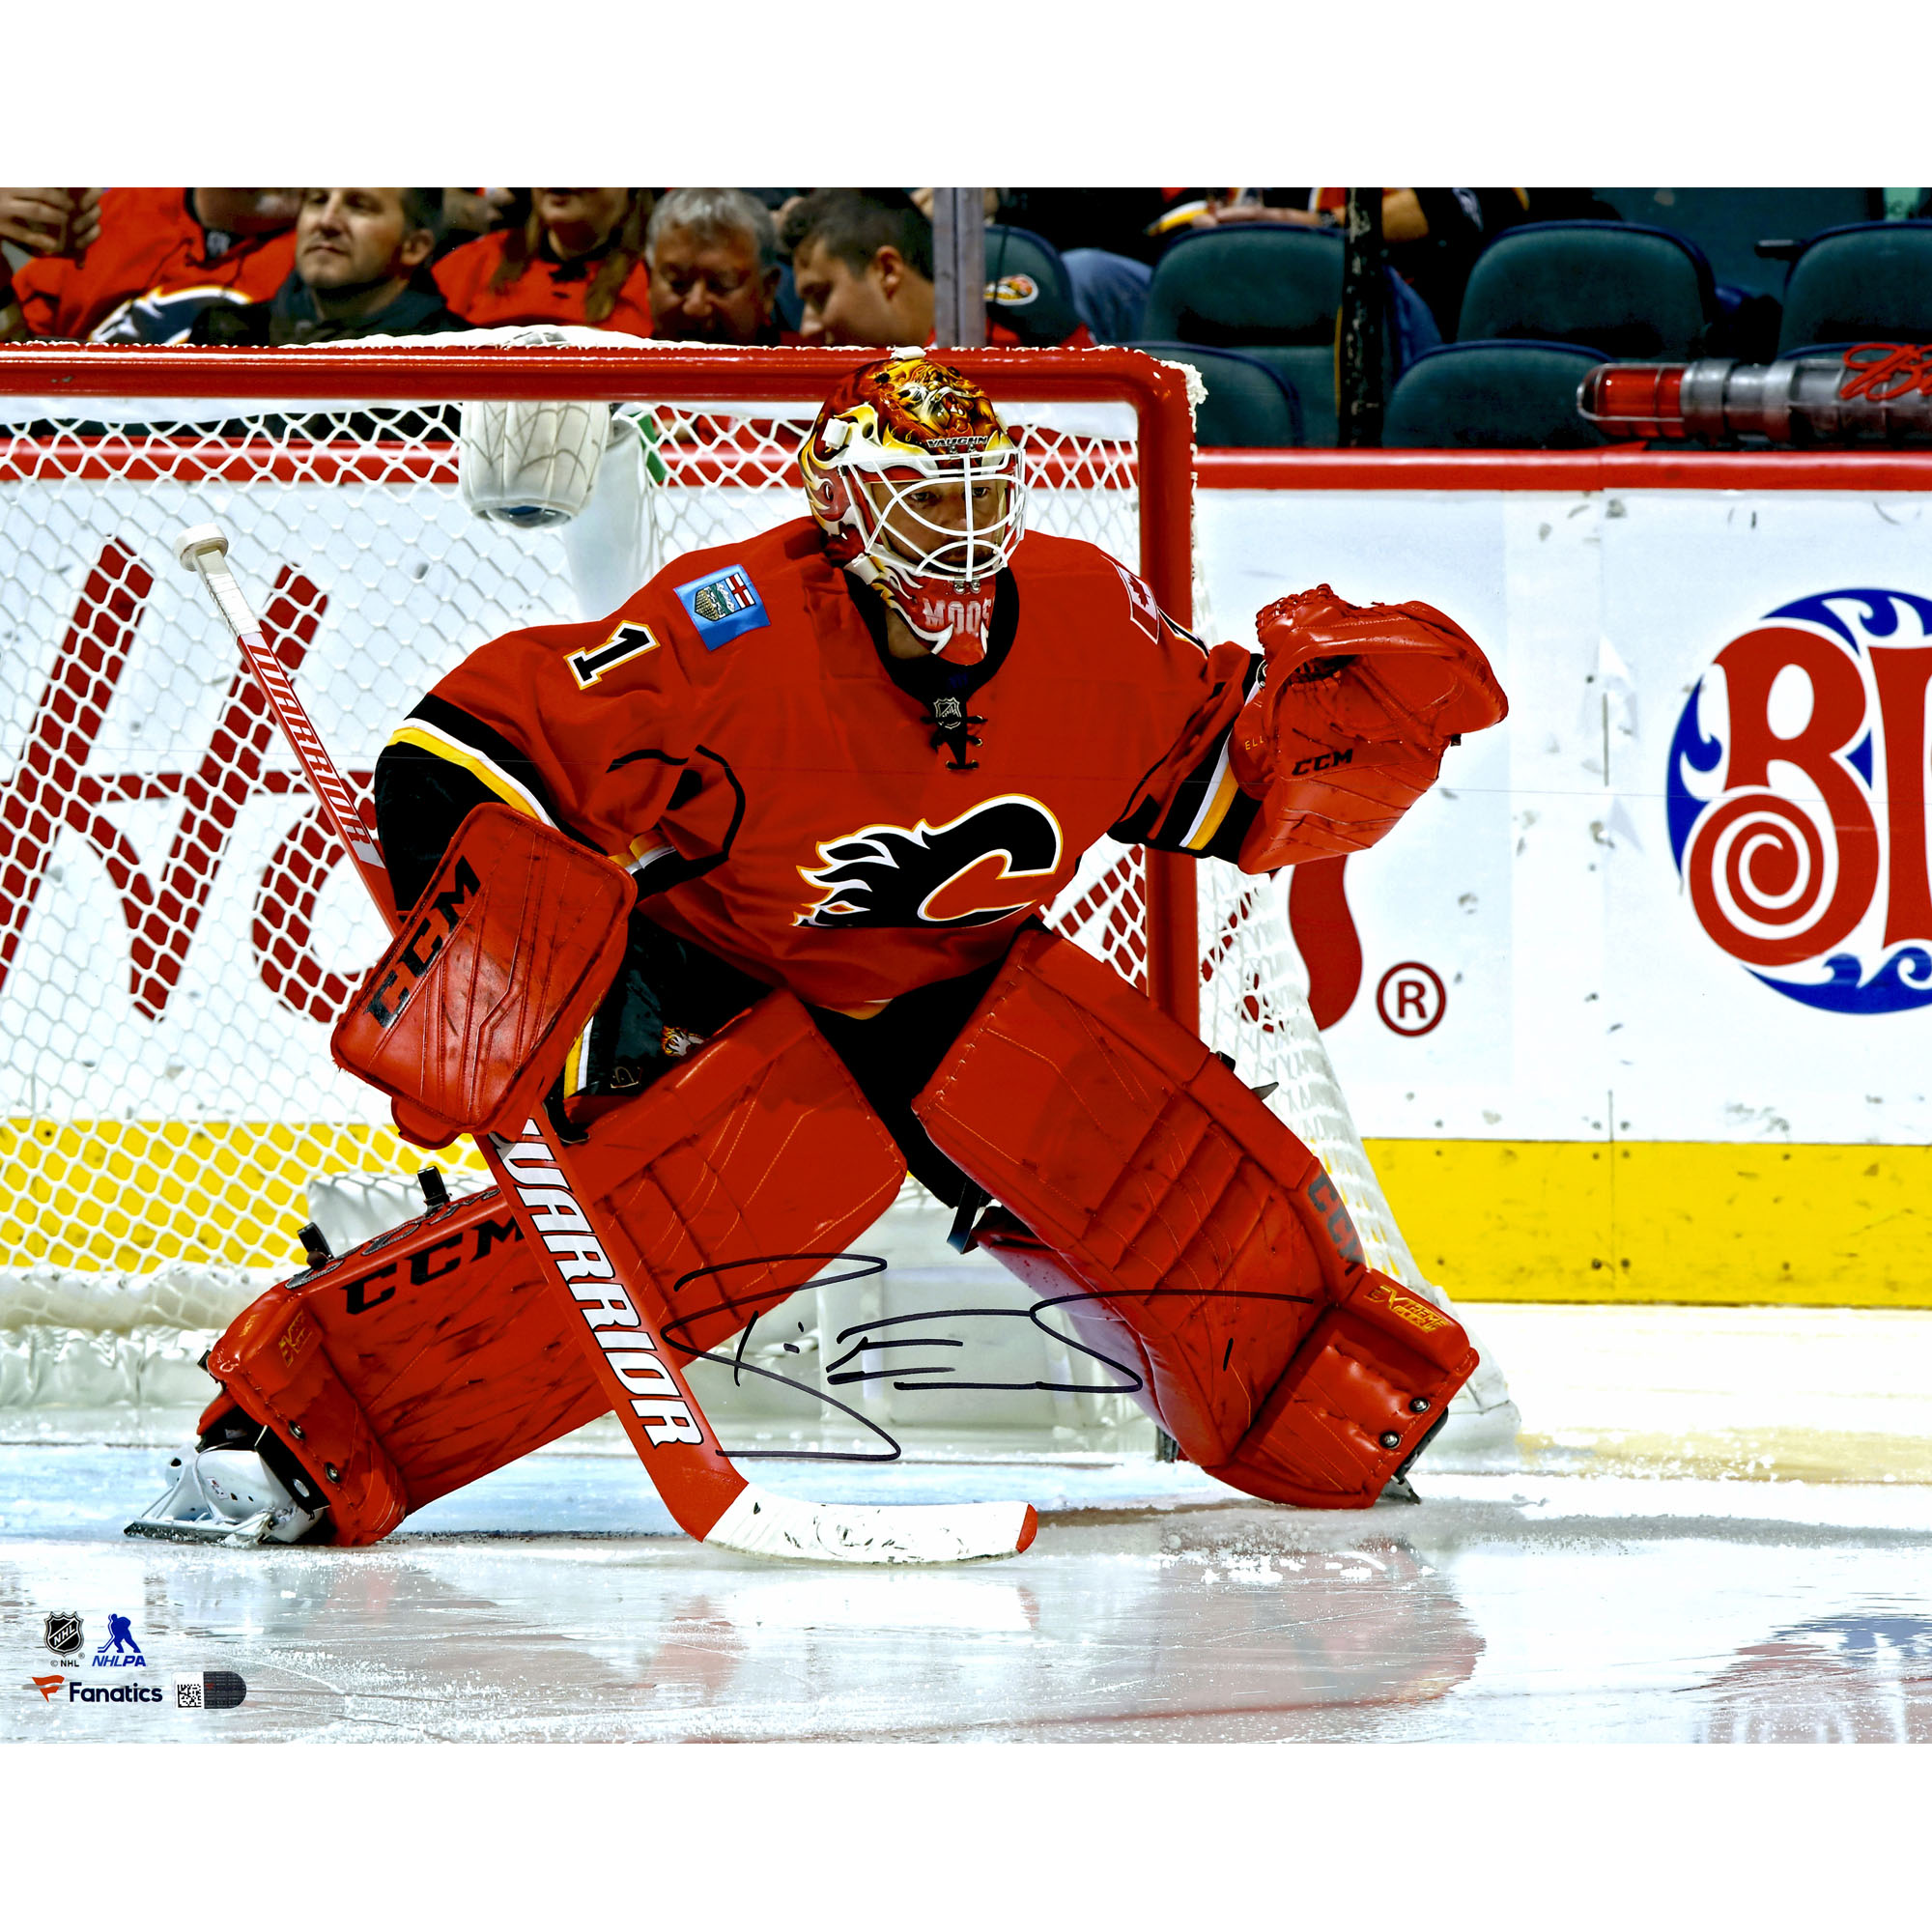 """Brian Elliott Calgary Flames Fanatics Authentic Autographed 16"""" x 20"""" Red Jersey In Net Photograph - No Size"""